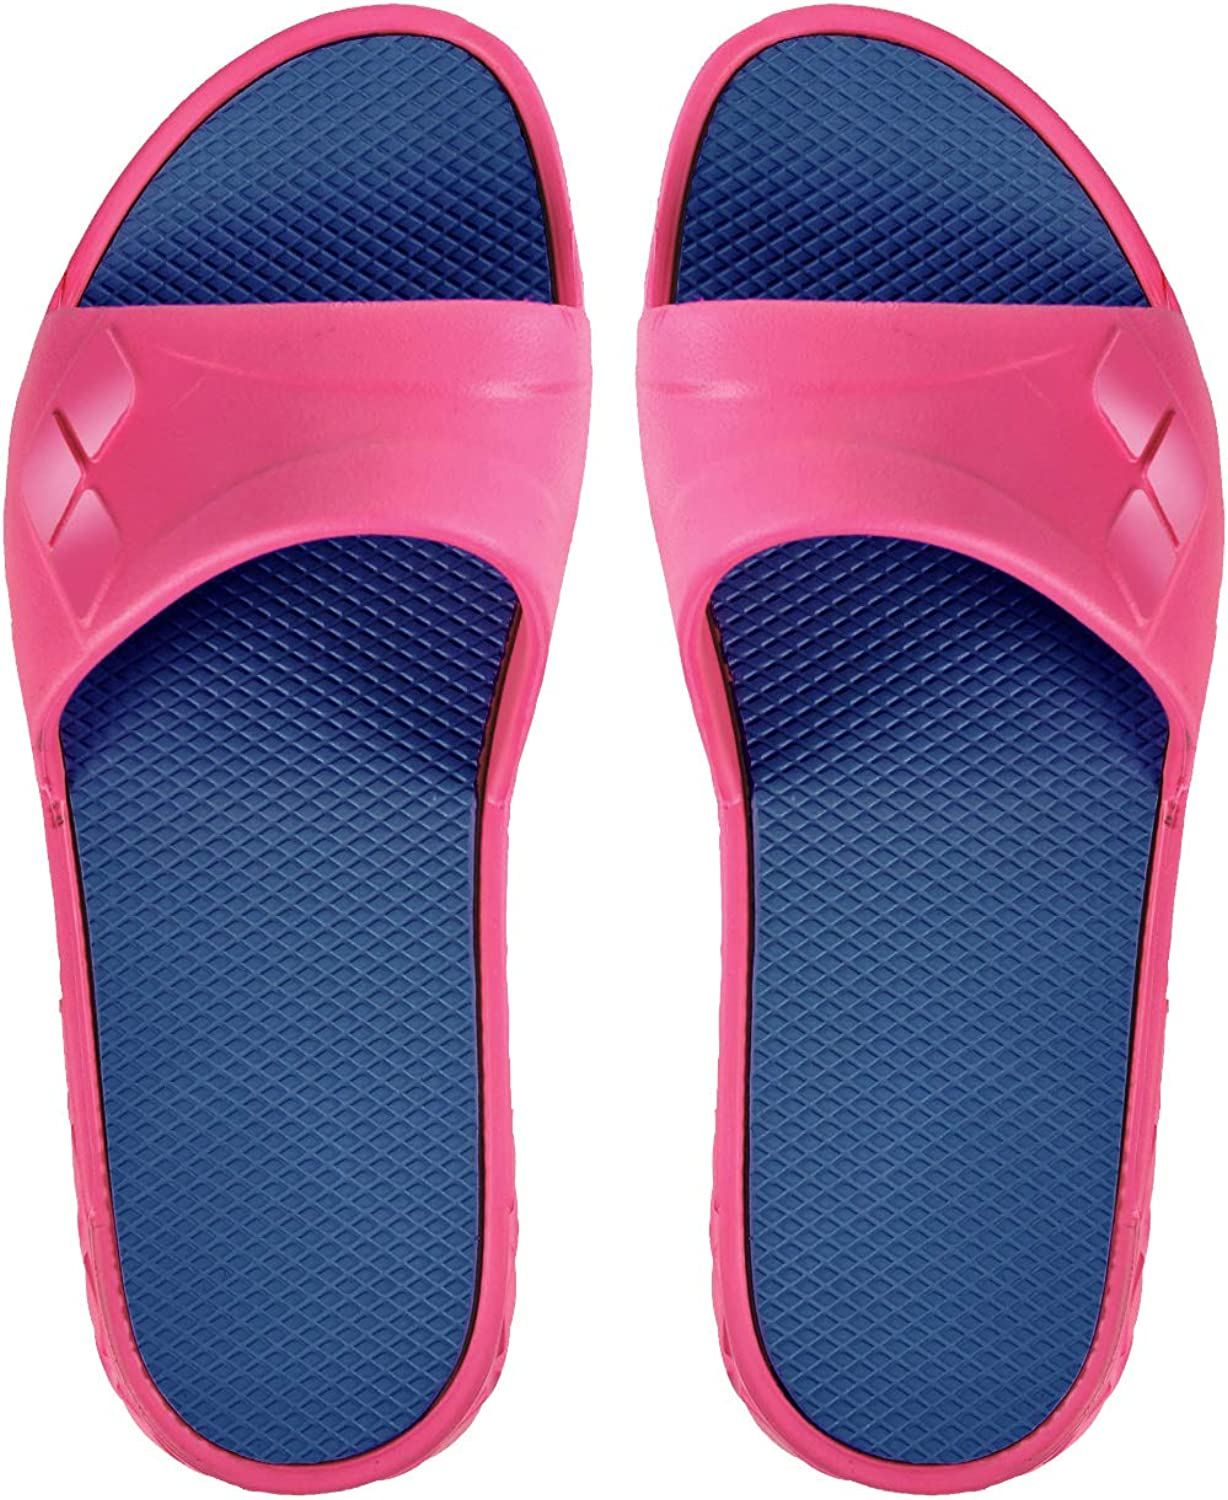 Arena Women's Watergrip Slide Pool Sandals, Fuchsia Grey, Size 6